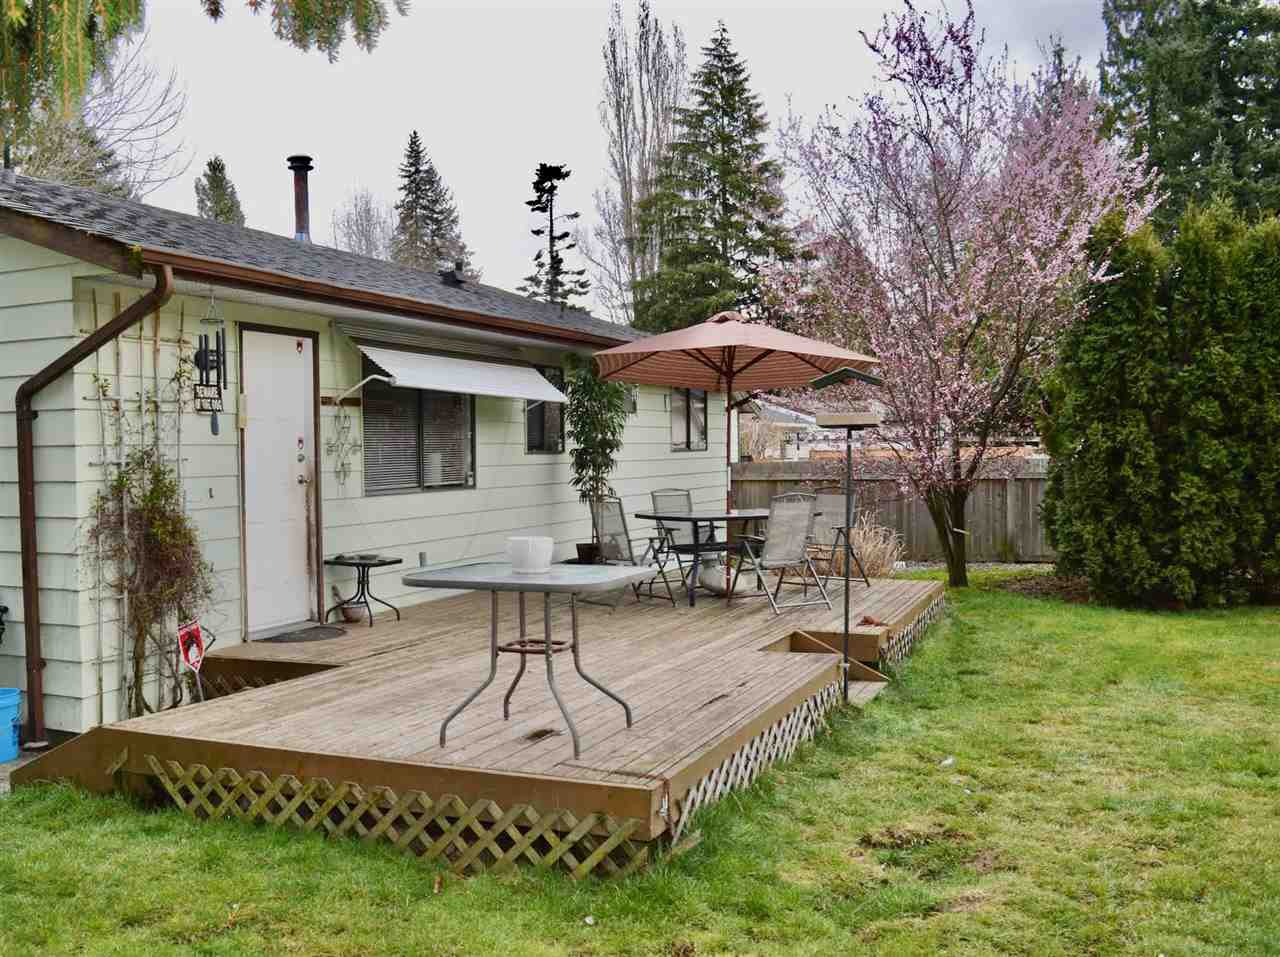 Photo 10: Photos: 20060 45 Avenue in Langley: Langley City House for sale : MLS®# R2448223